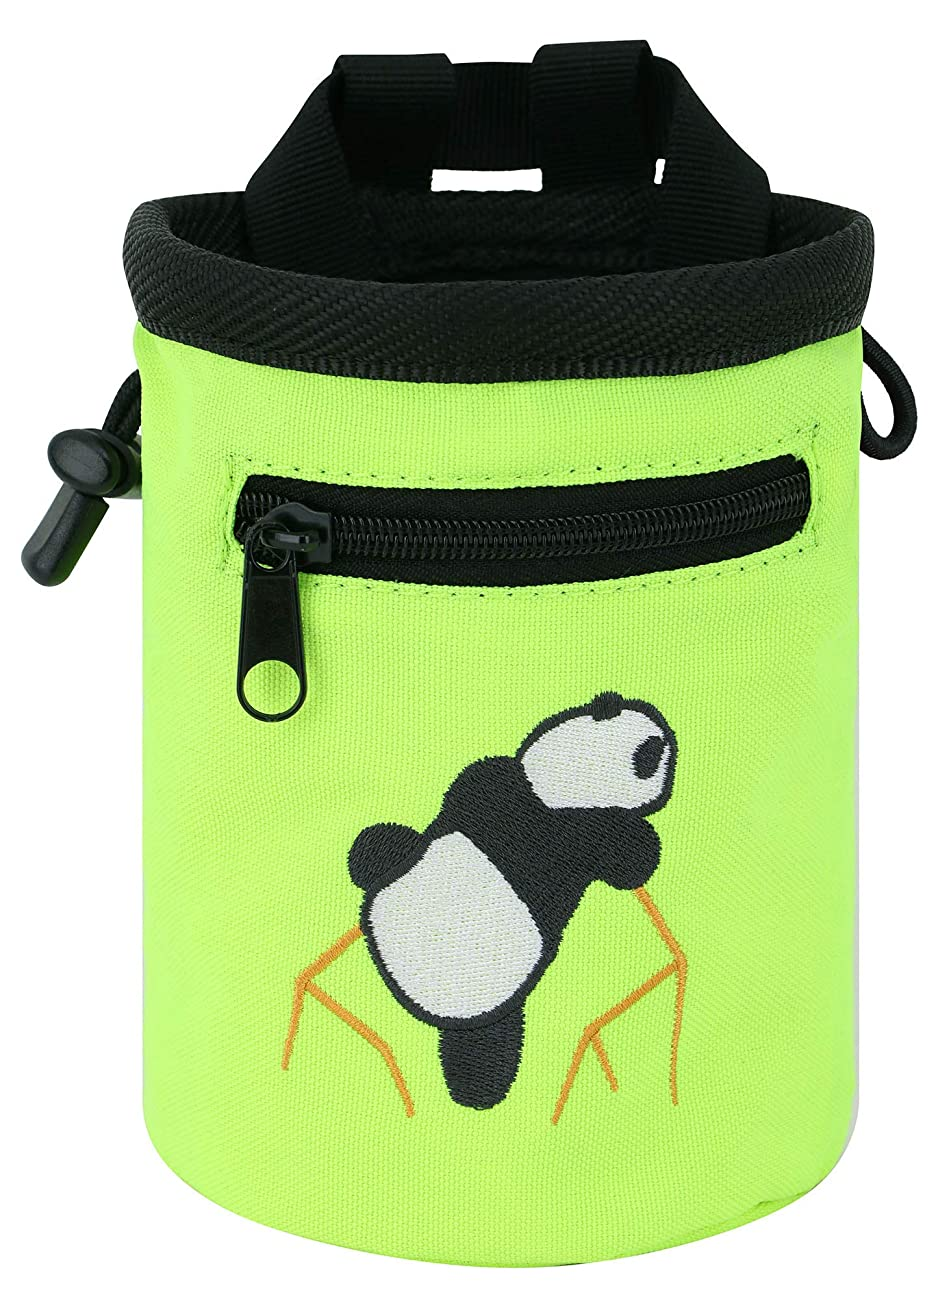 AMC Rock Climbing Panda Design Chalk Bag with Adjustable Belt